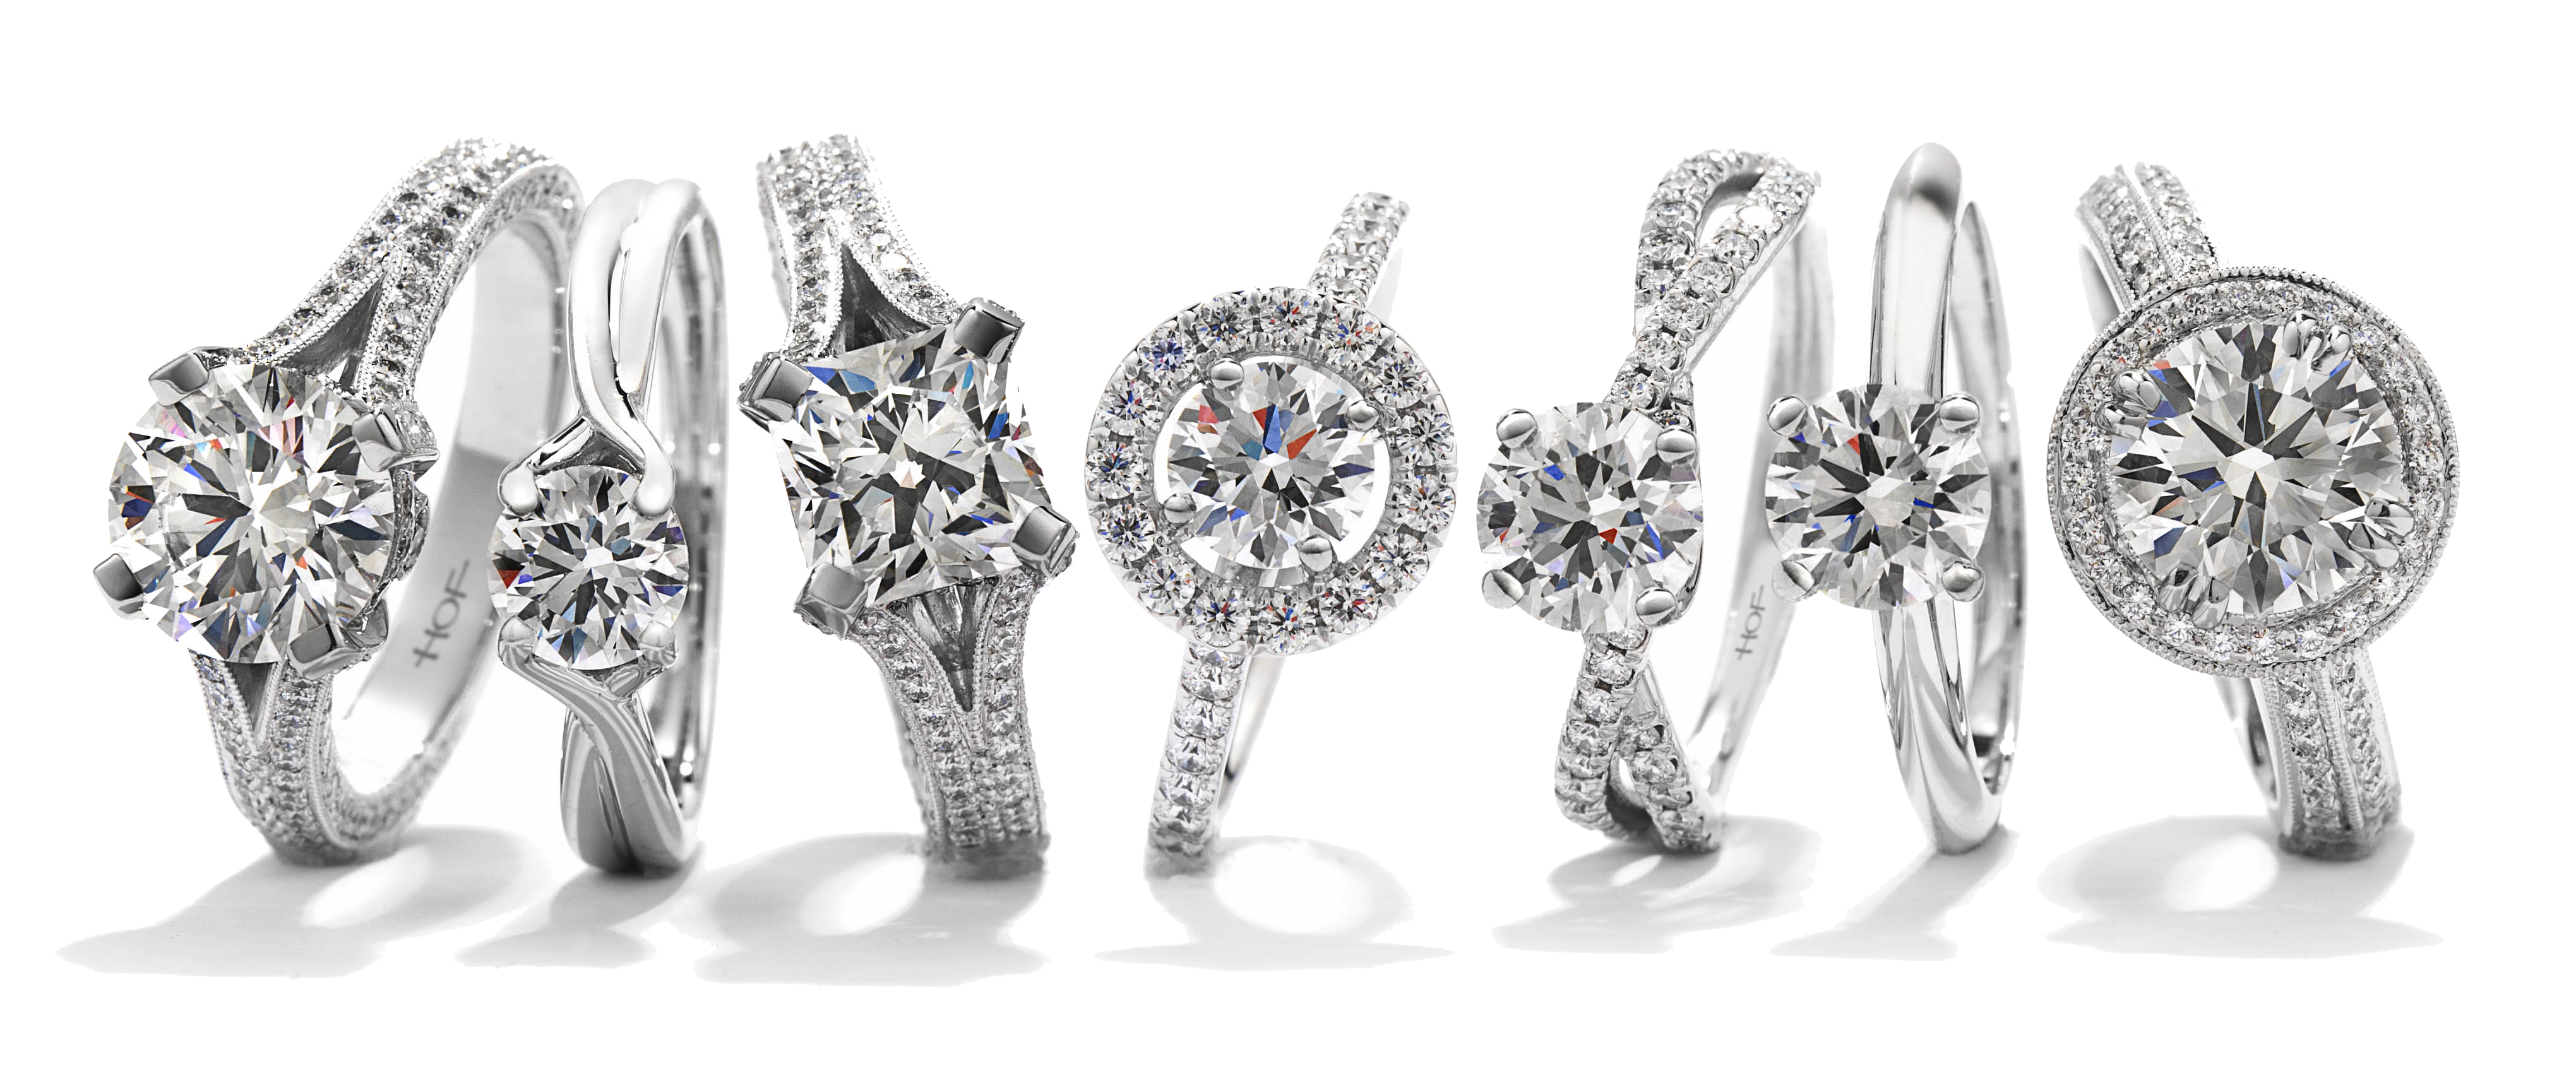 Png Format Images Of Jewellery image #36062